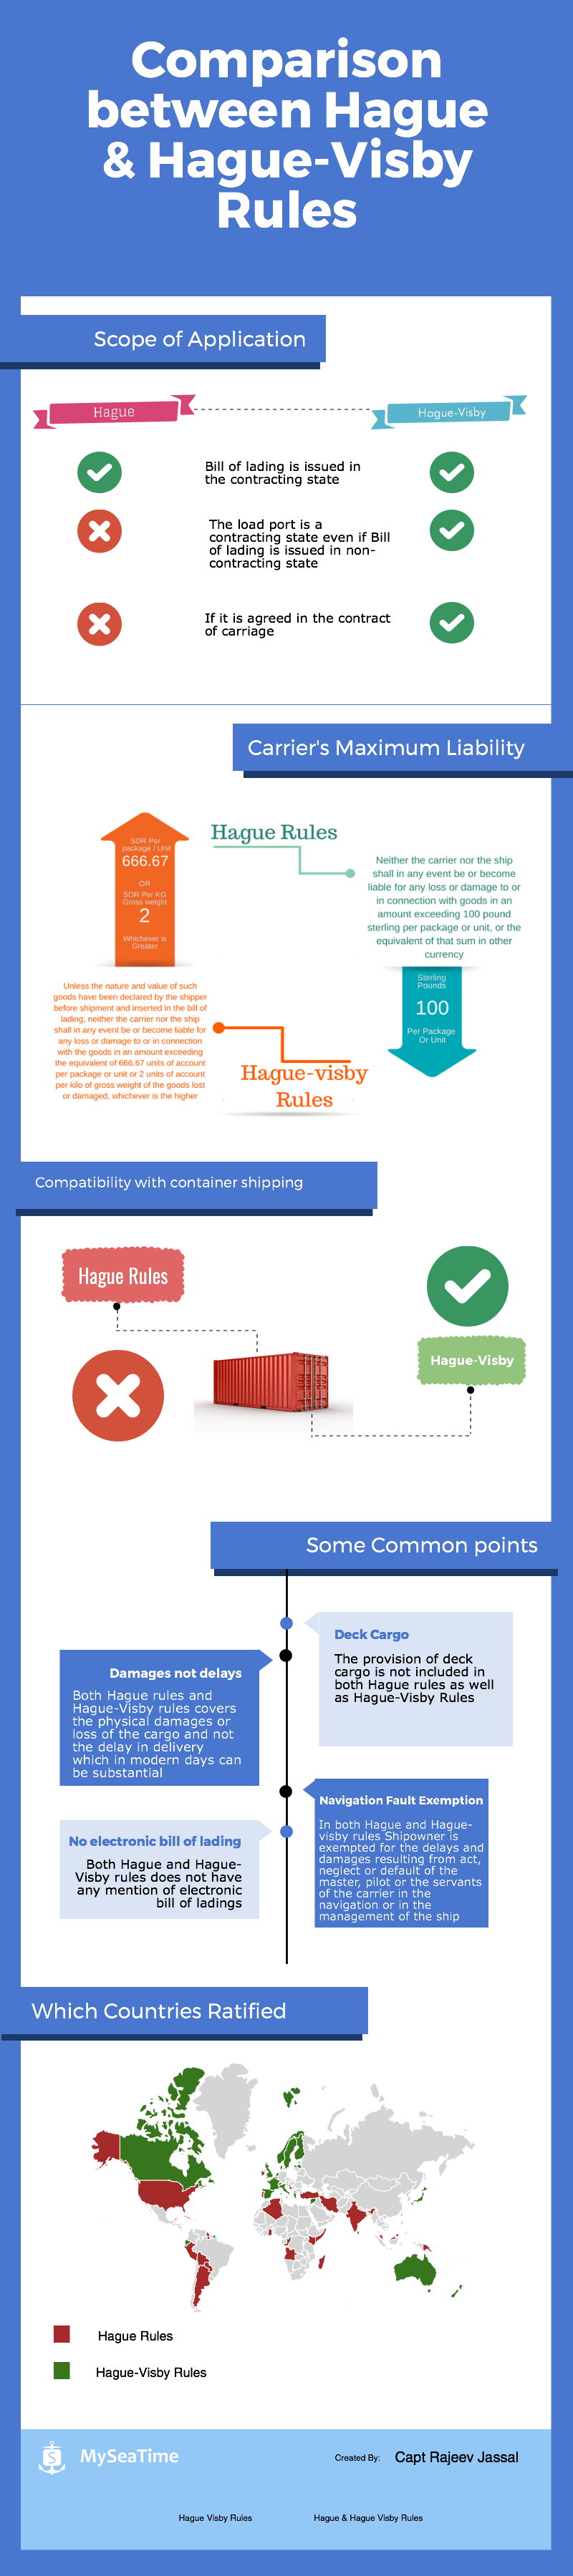 Comparison-between-hague-and-hague-visby-rules amended 1